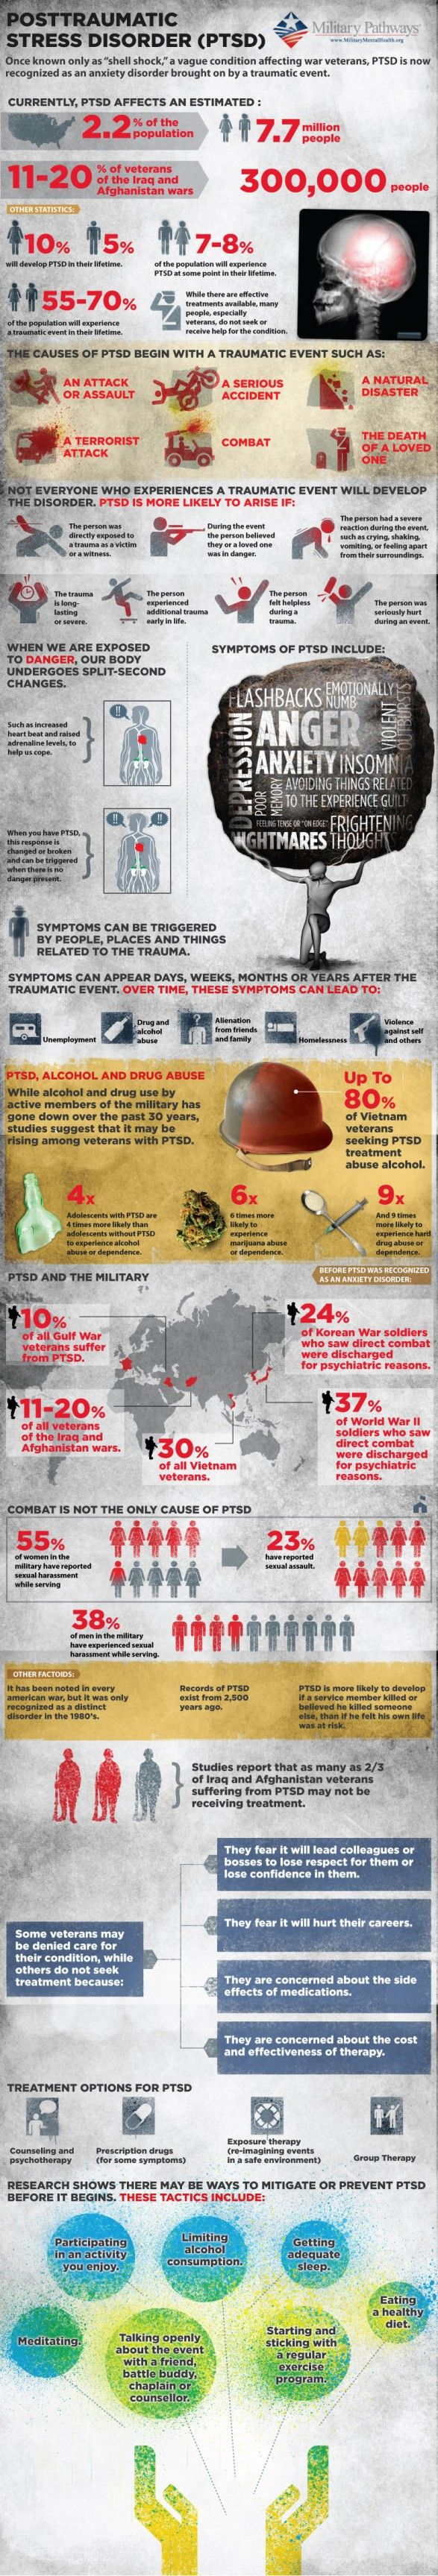 Post Traumatic Stress Disorder - #PTSD or Shell Shock #Infographic. Recent studies have linked having ADHD with a higher likelihood of developing ADHD. (http://jad.sagepub.com/content/8/1/11.short)